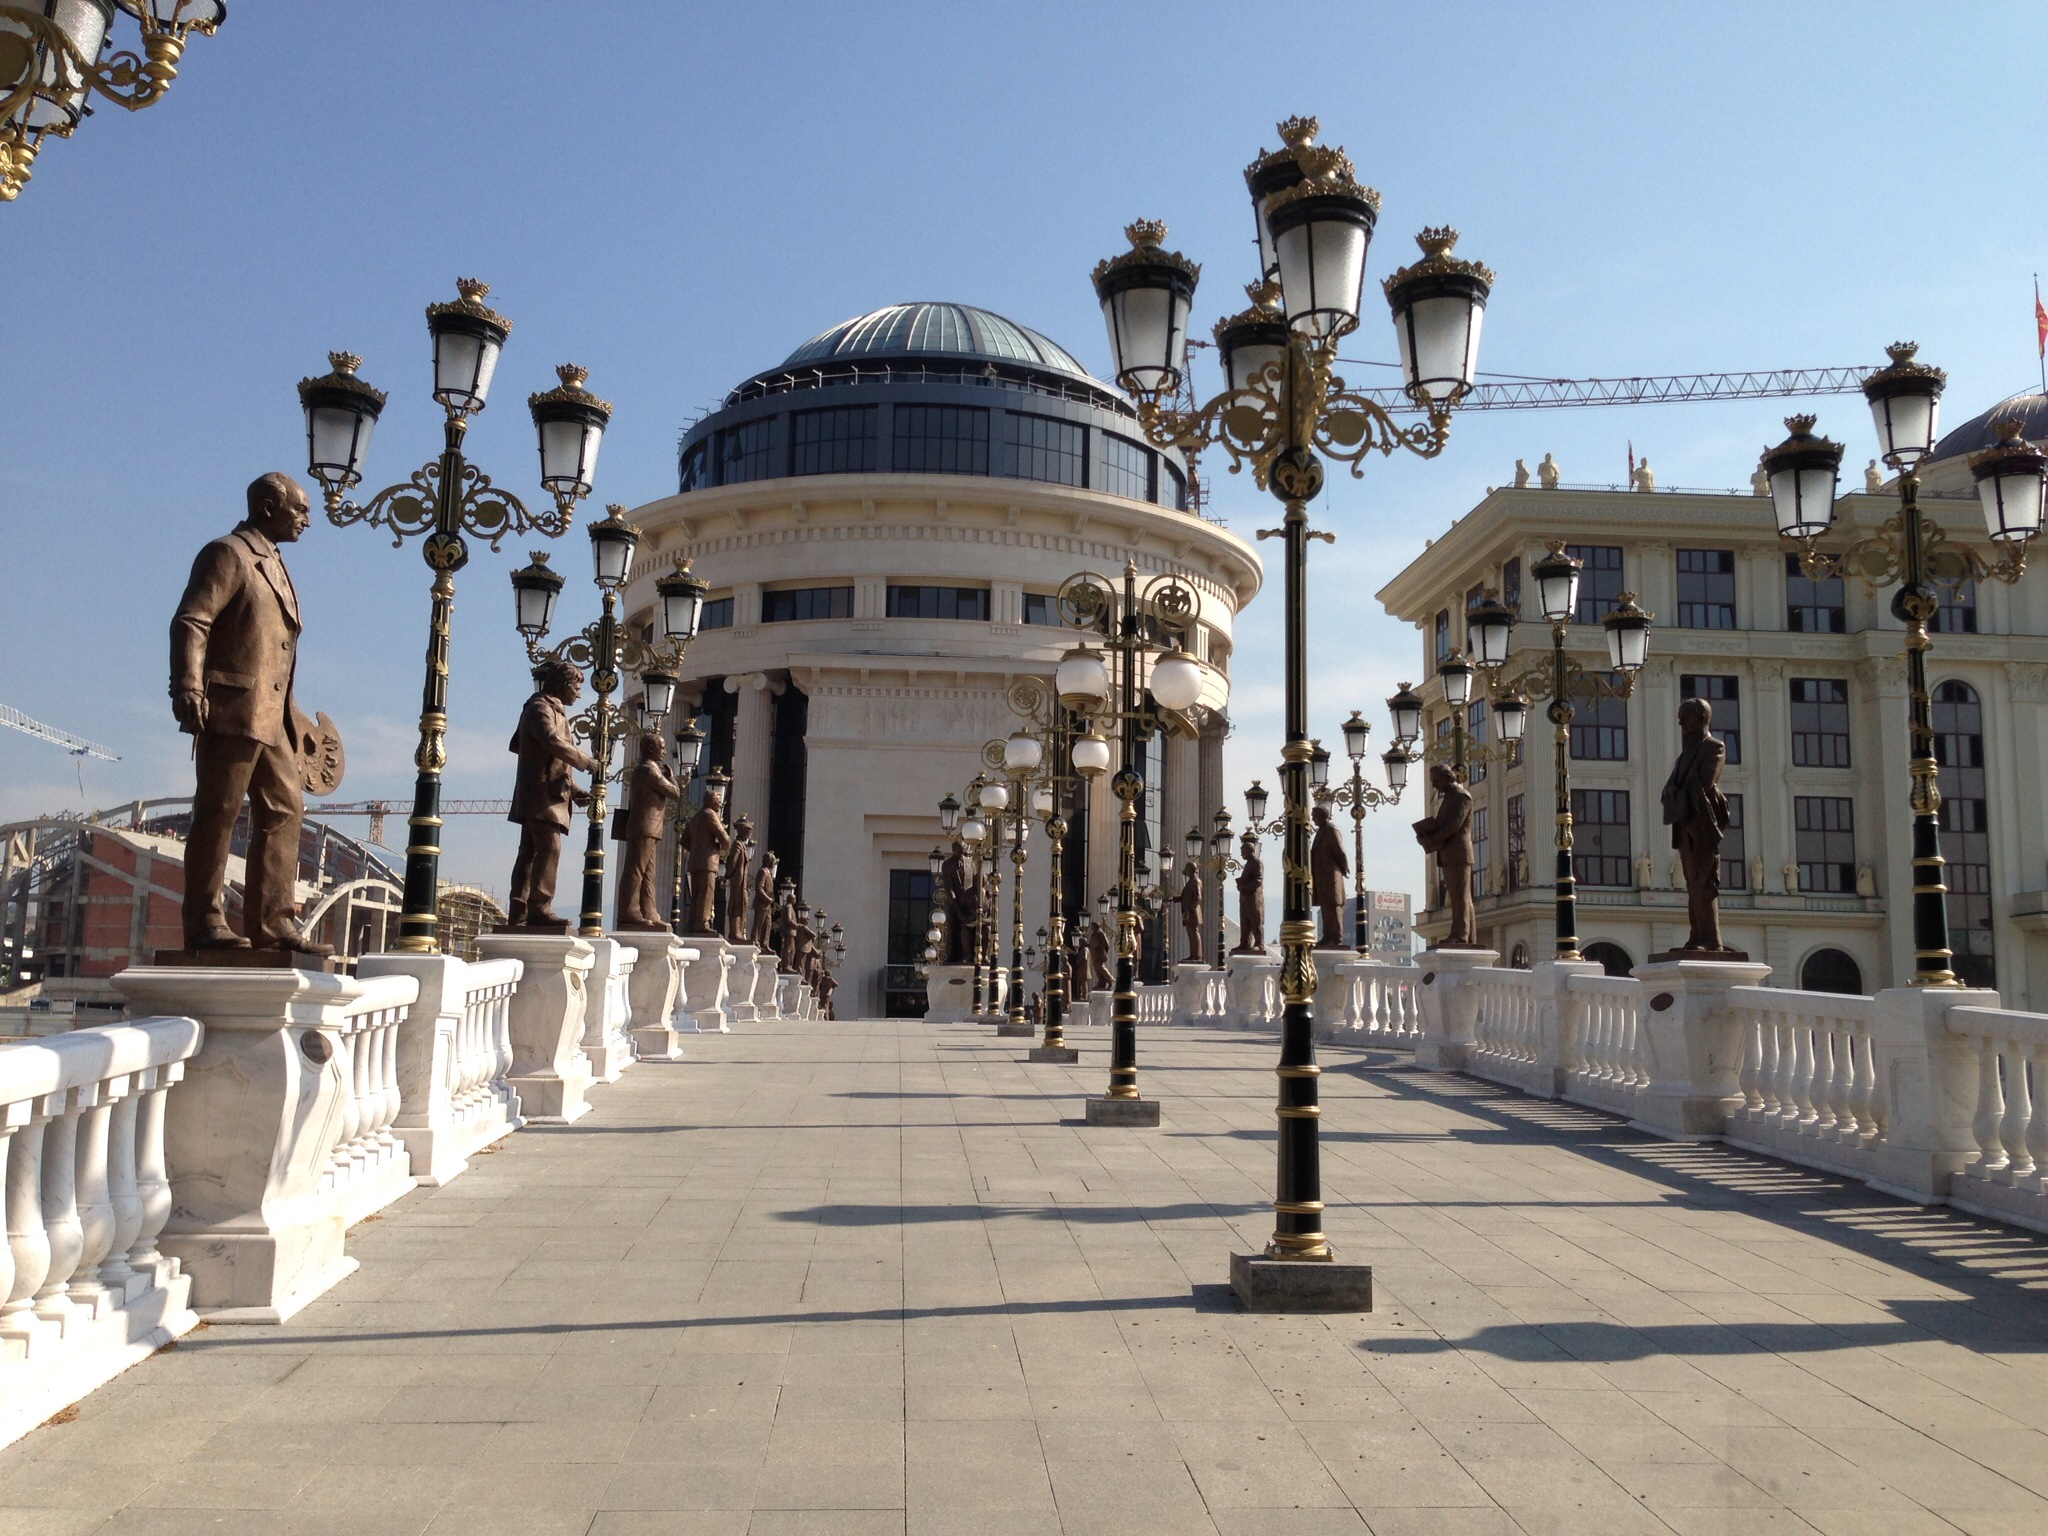 DAY 1: Skopje is welcoming you!